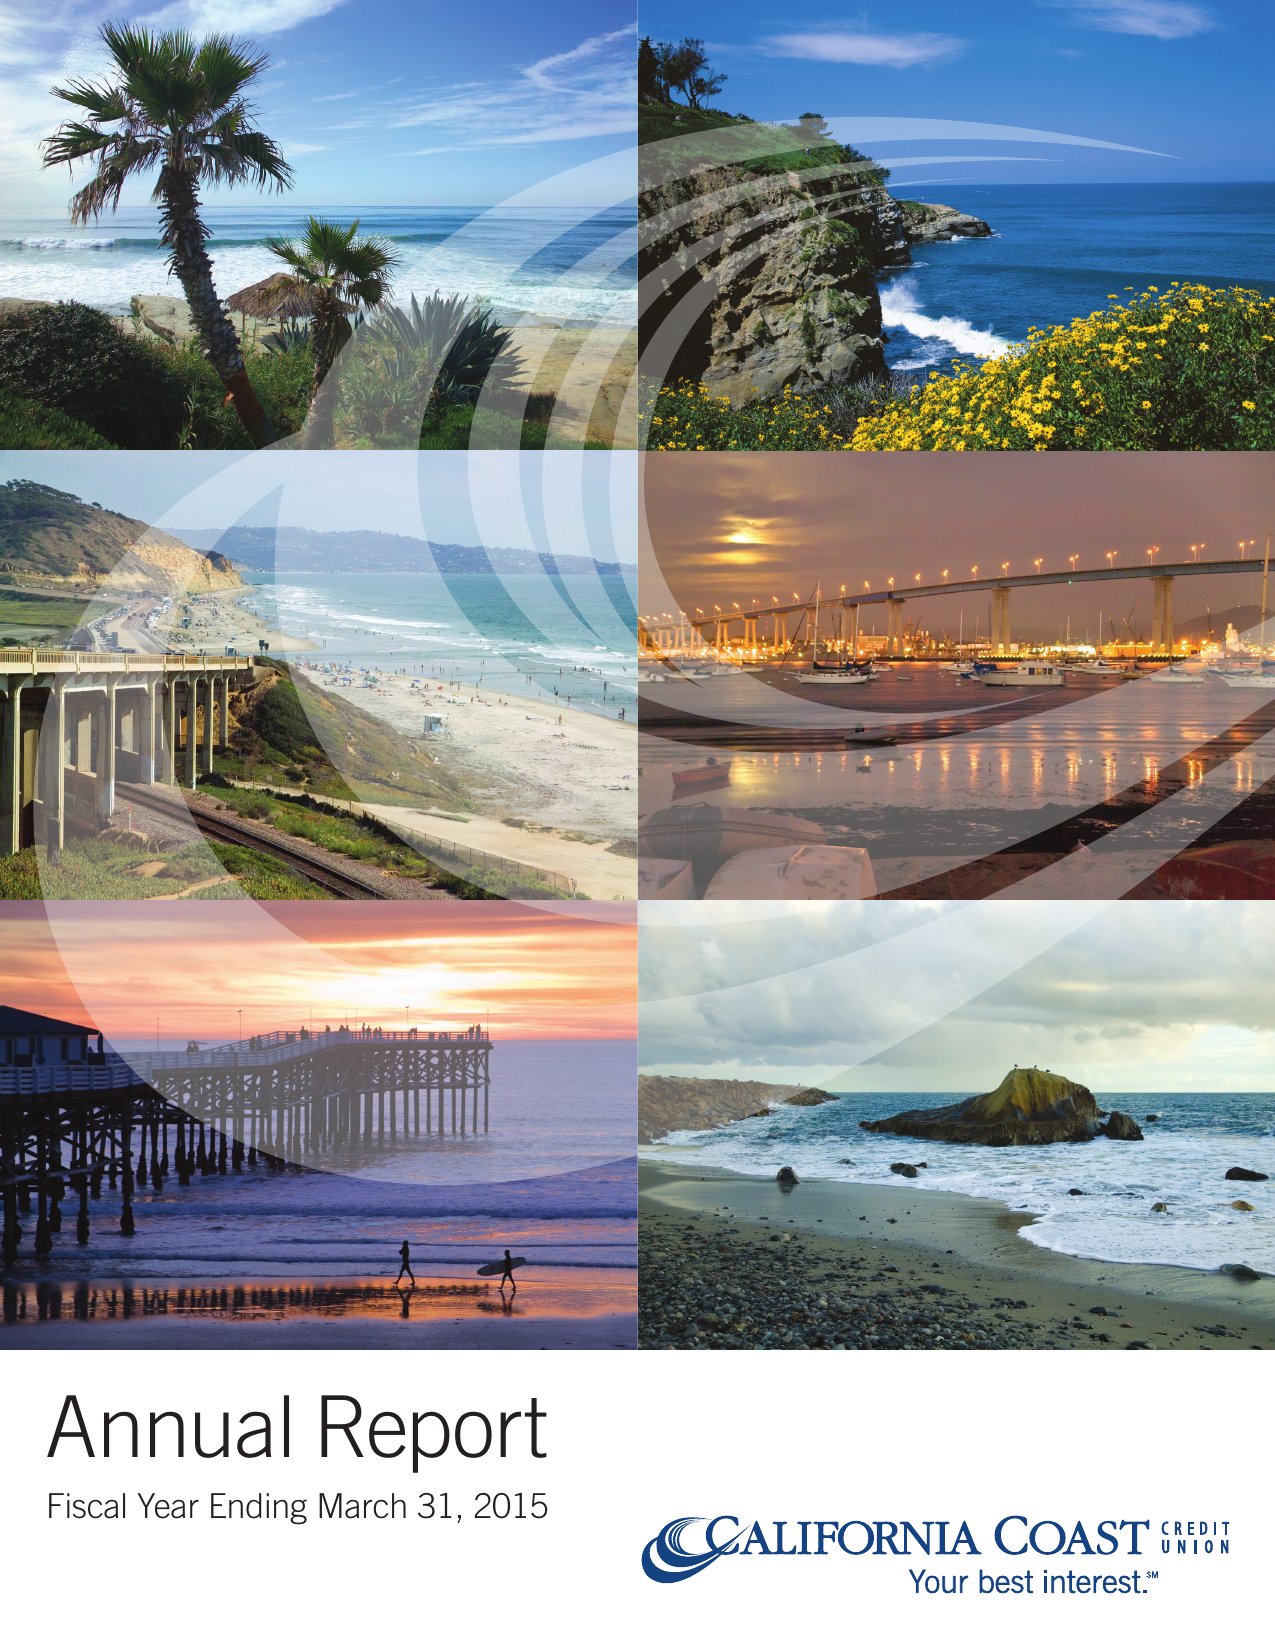 California Coast Credit Union Locations >> Annual Report California Coast Credit Union